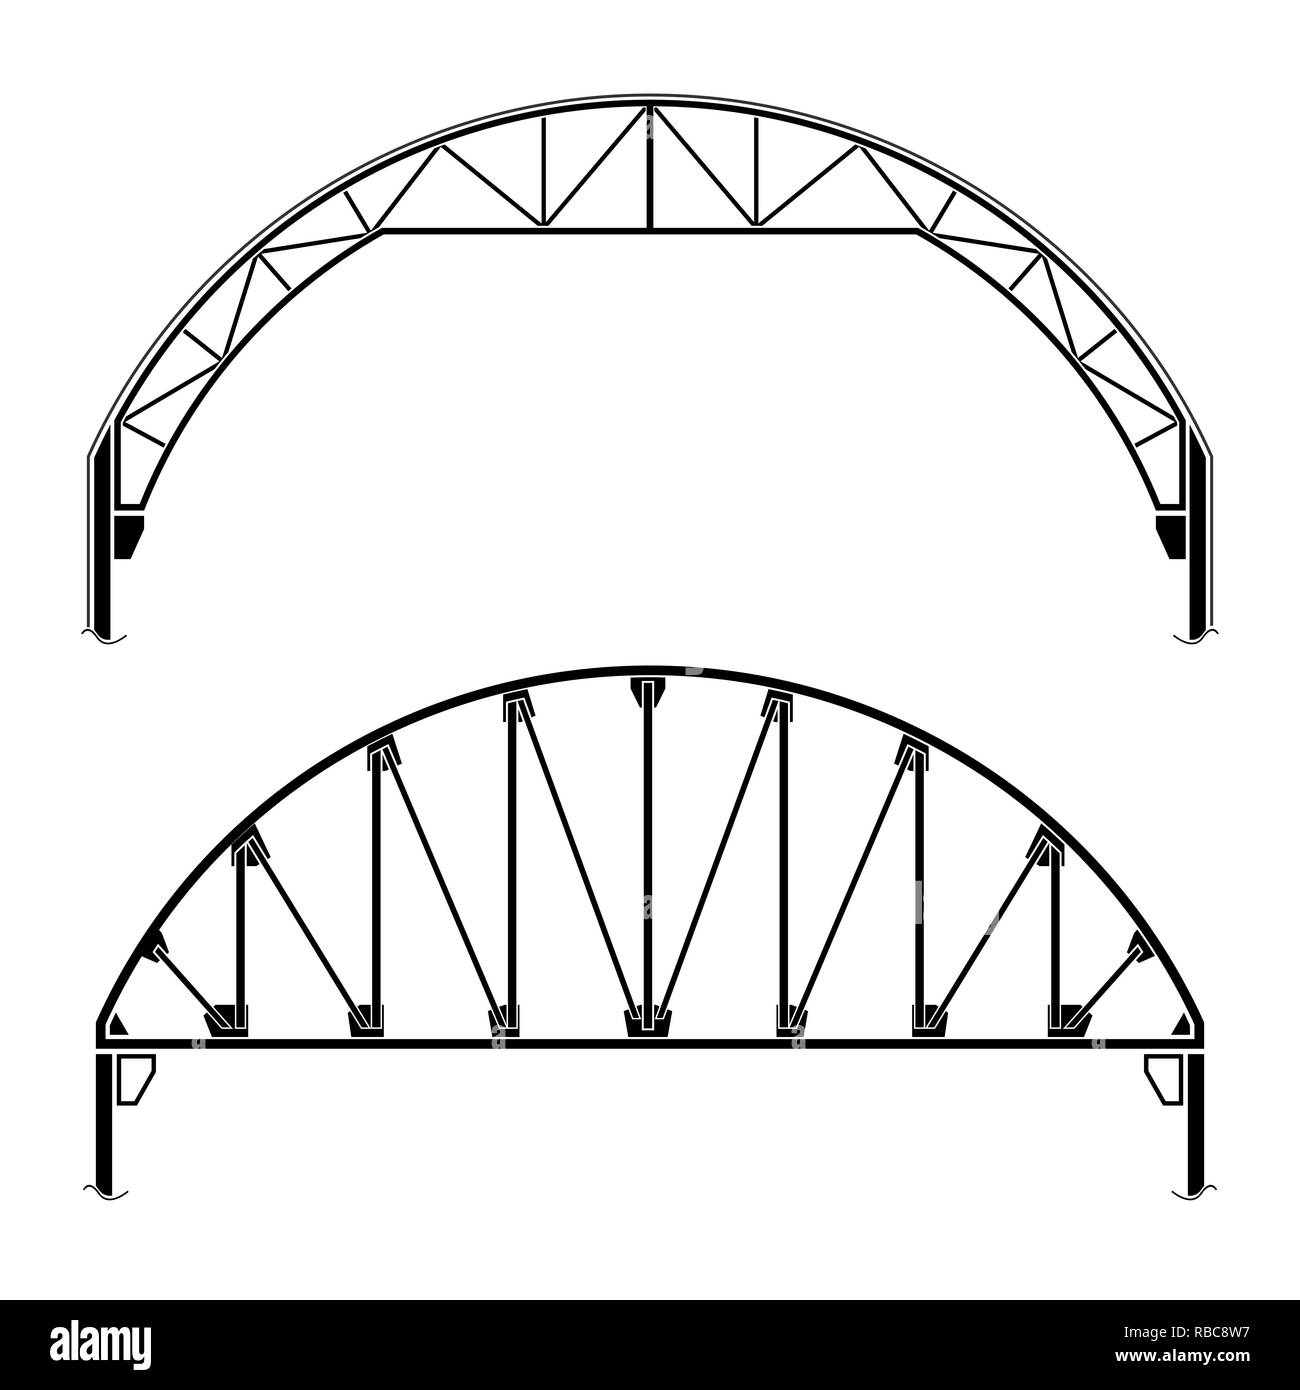 hight resolution of roofing building dome shaped vector illustration stock image